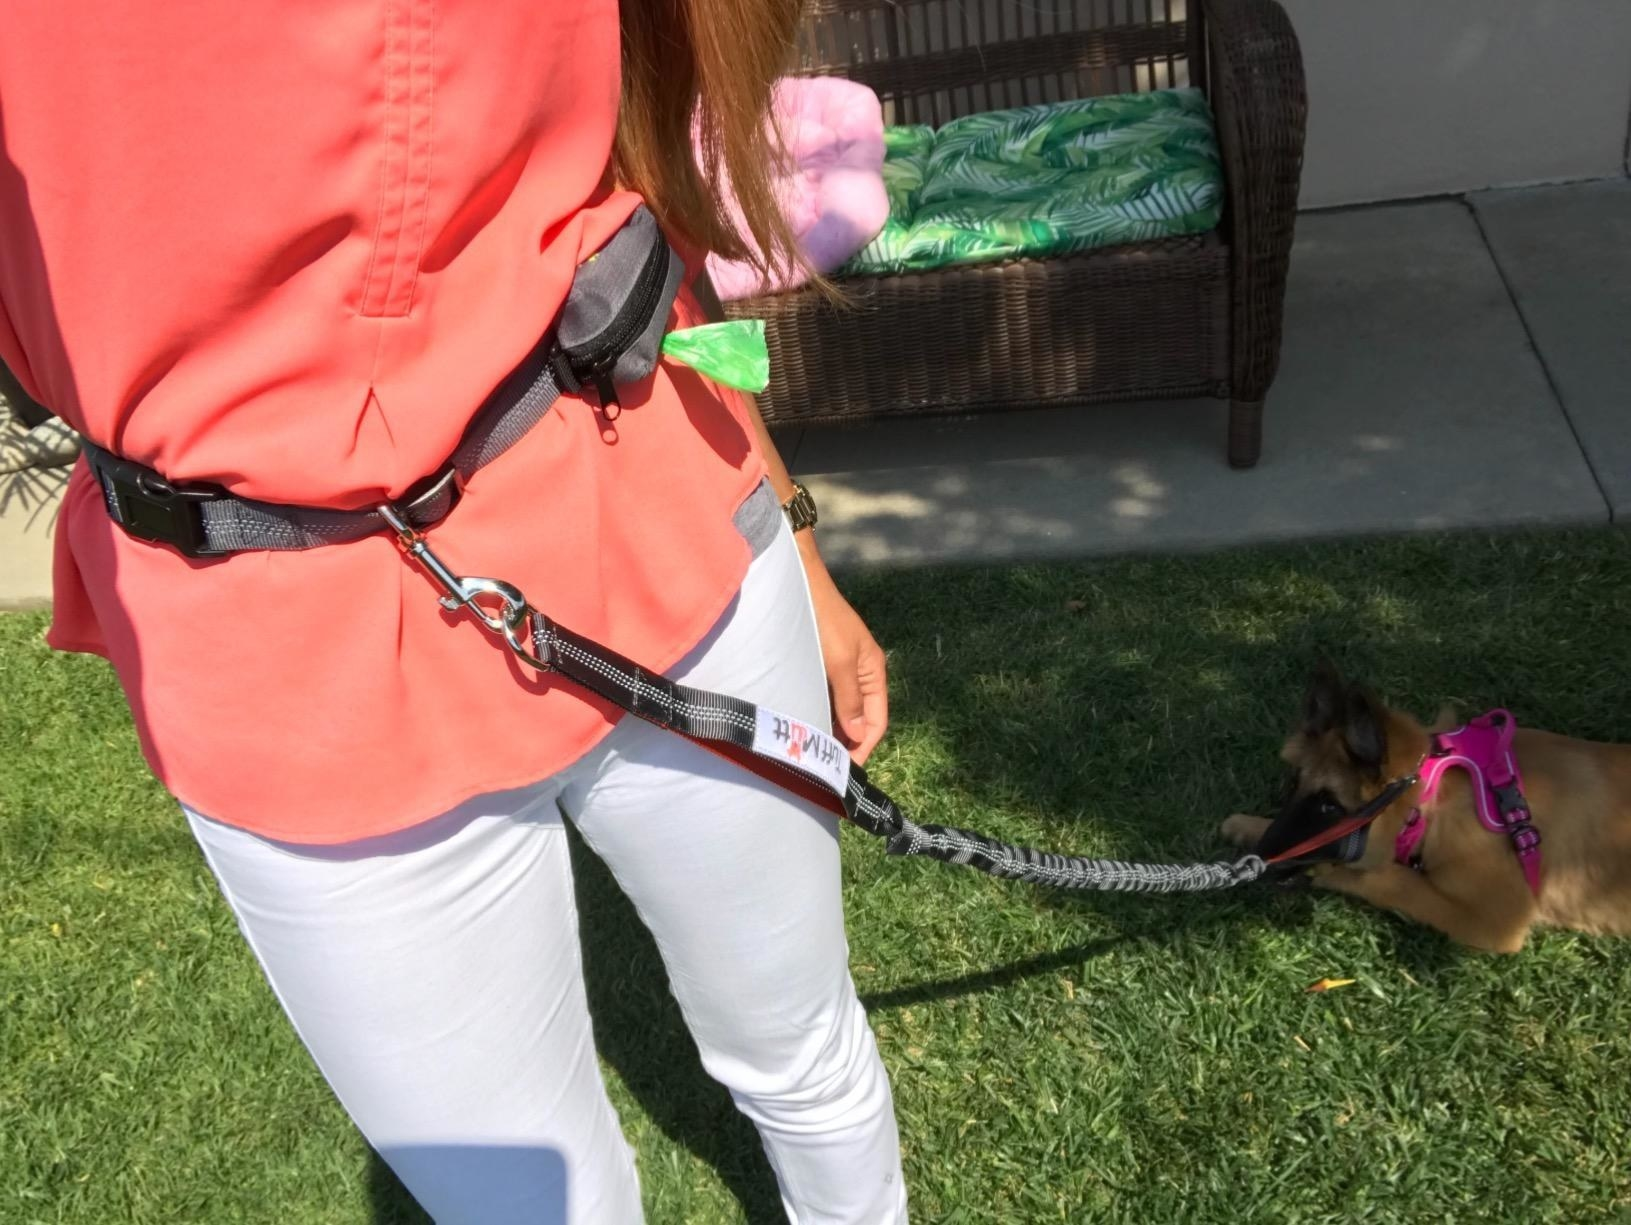 The leash, which wraps around the waist, and then hooks to the dog's leash with a carabiner-style clip